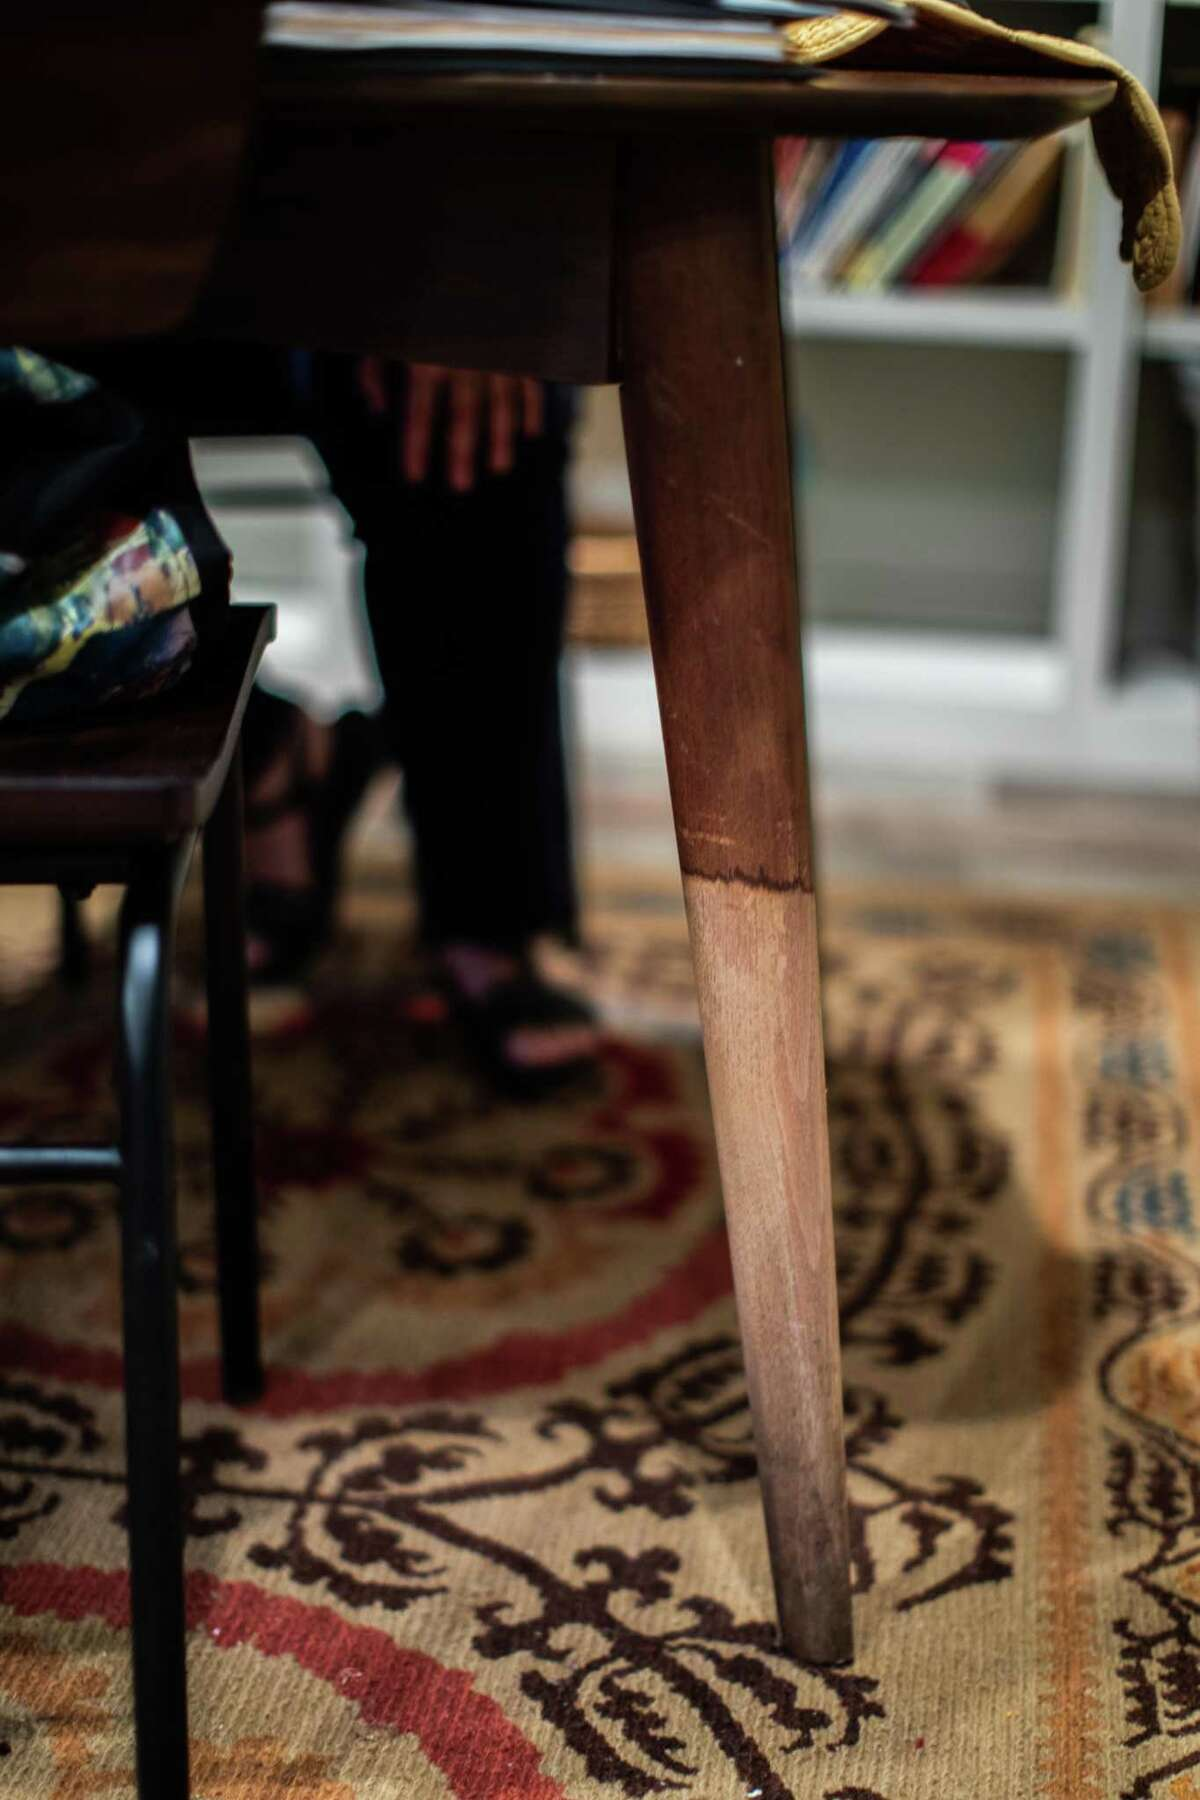 Leslie Friedrich's dining table still has a water stain from the time her home got flooded on the aftermath of Hurricane Harvey nearly four years ago. Wednesday, July 21, 2021, in Houston.